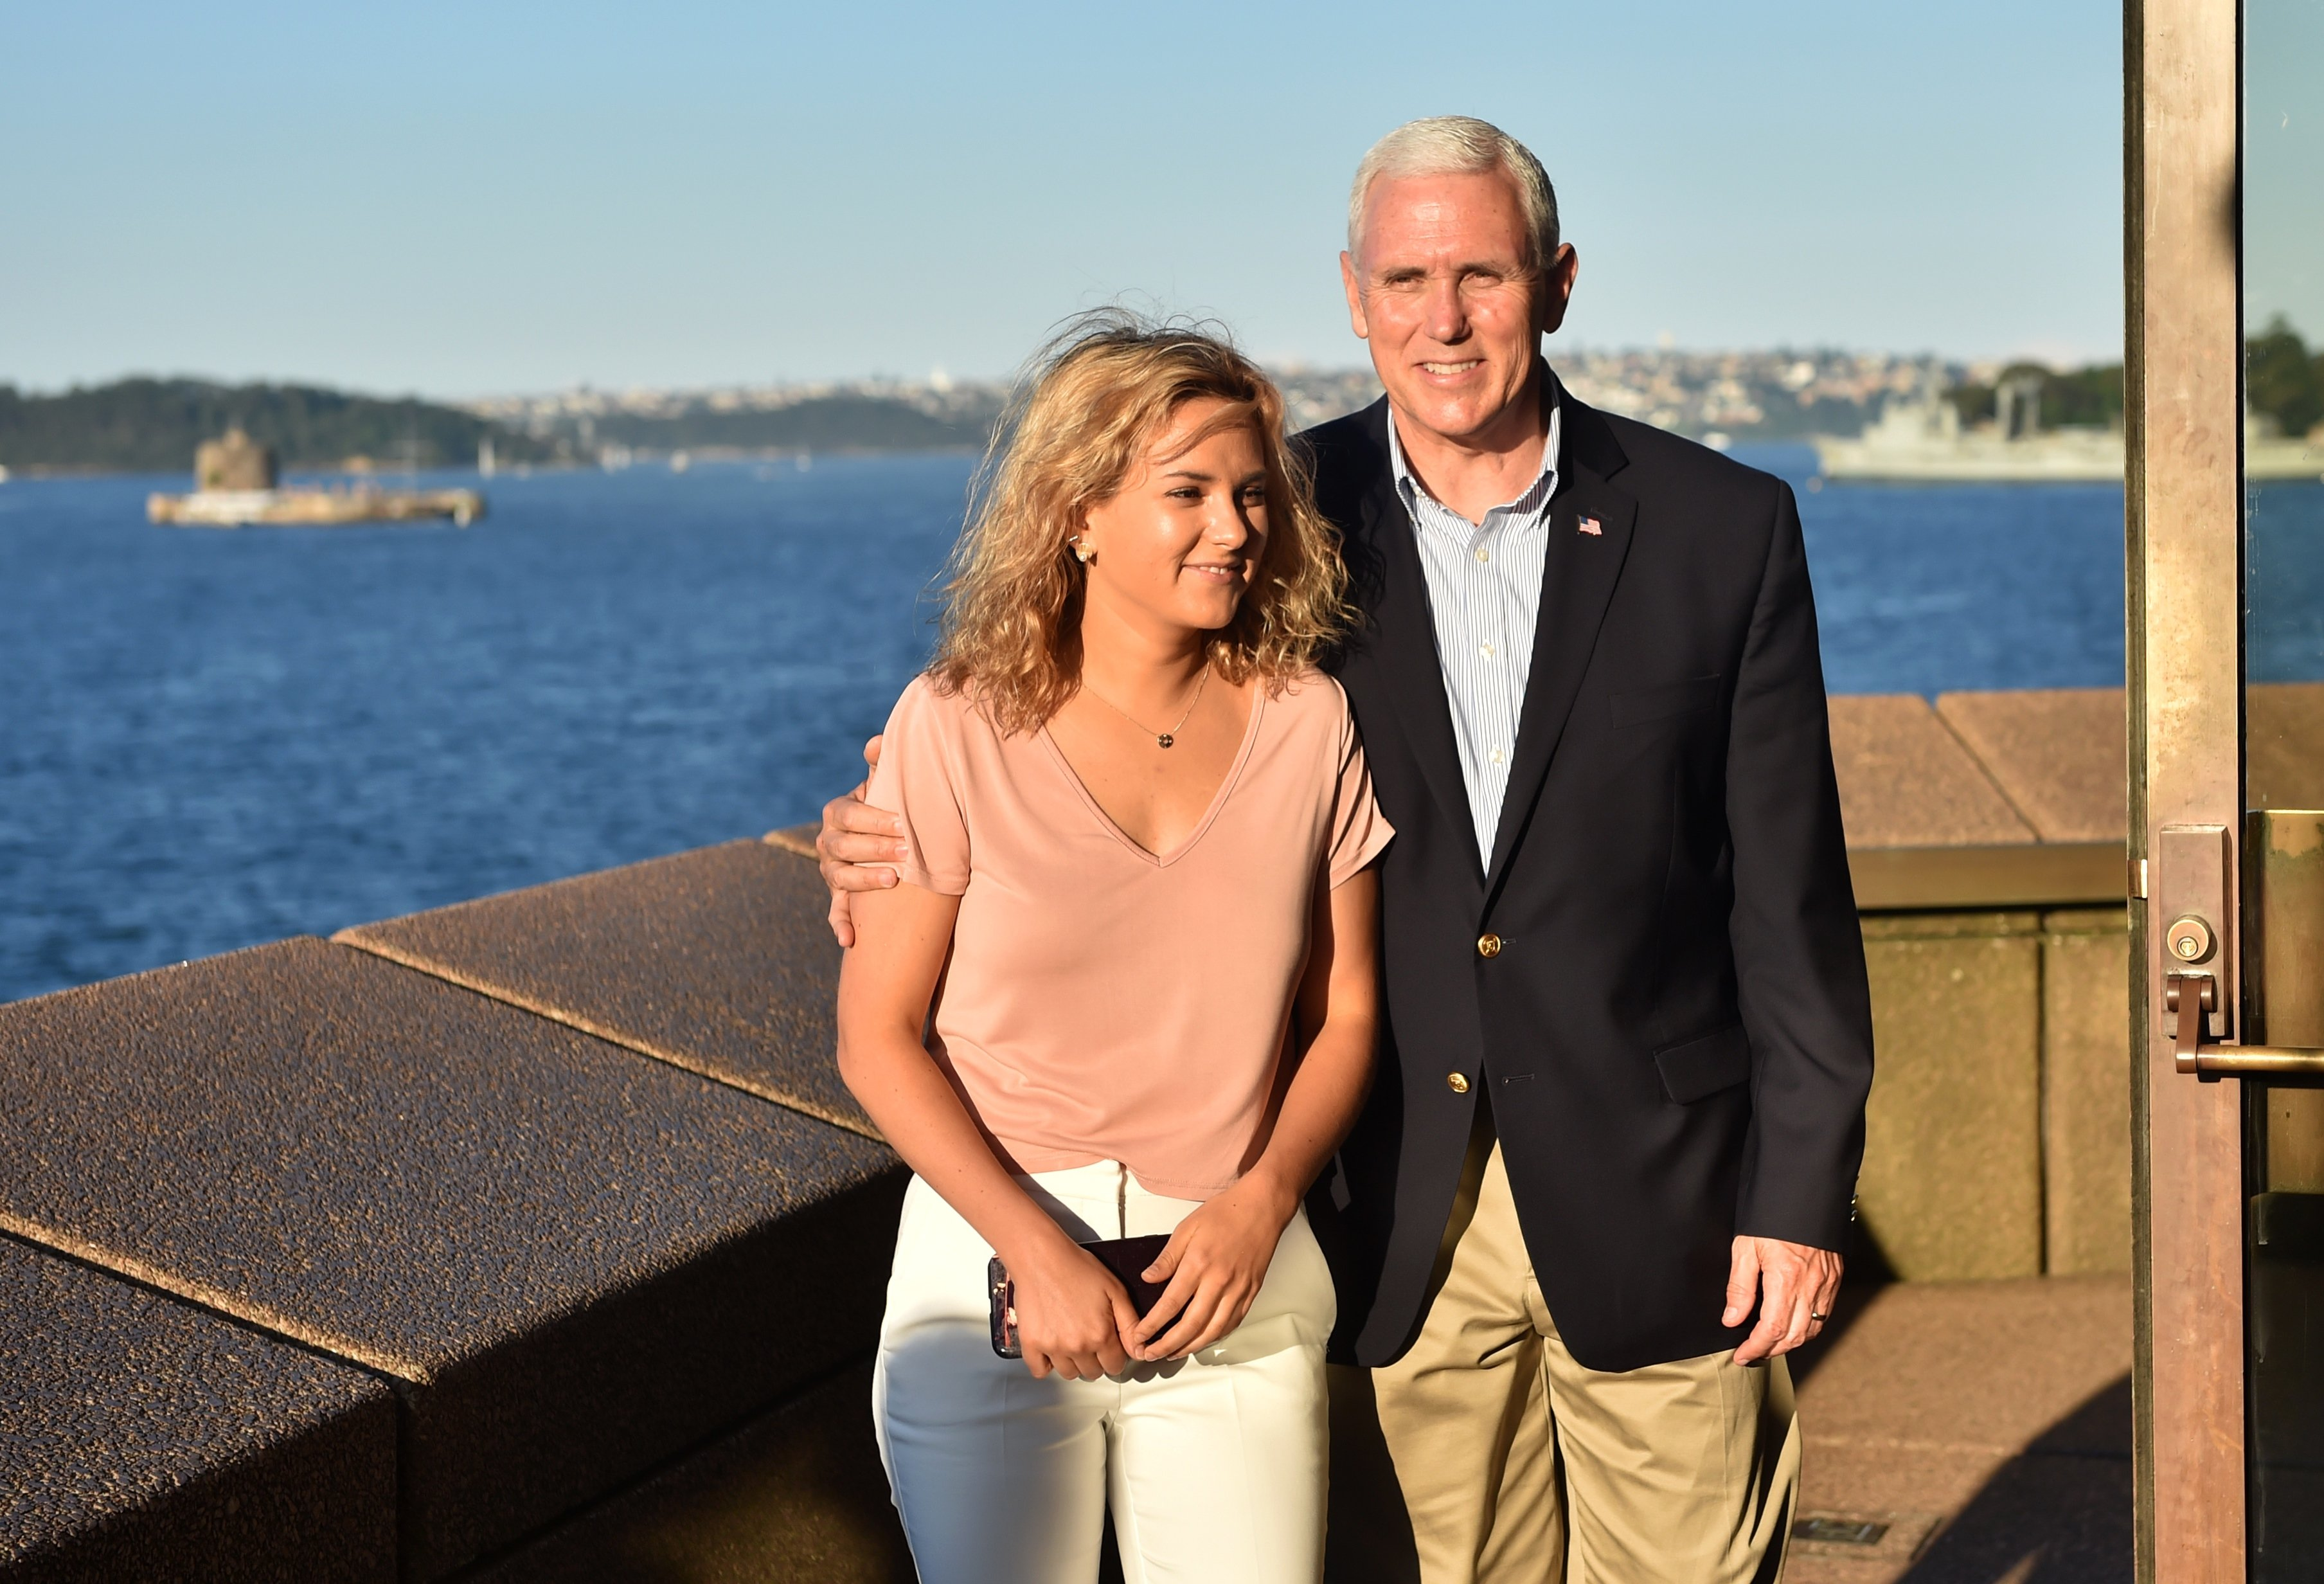 Mike Pence  visits the Opera House with his daughter Charlotte on April 23, 2017 in Sydney, Australia | Photo: GettyImages